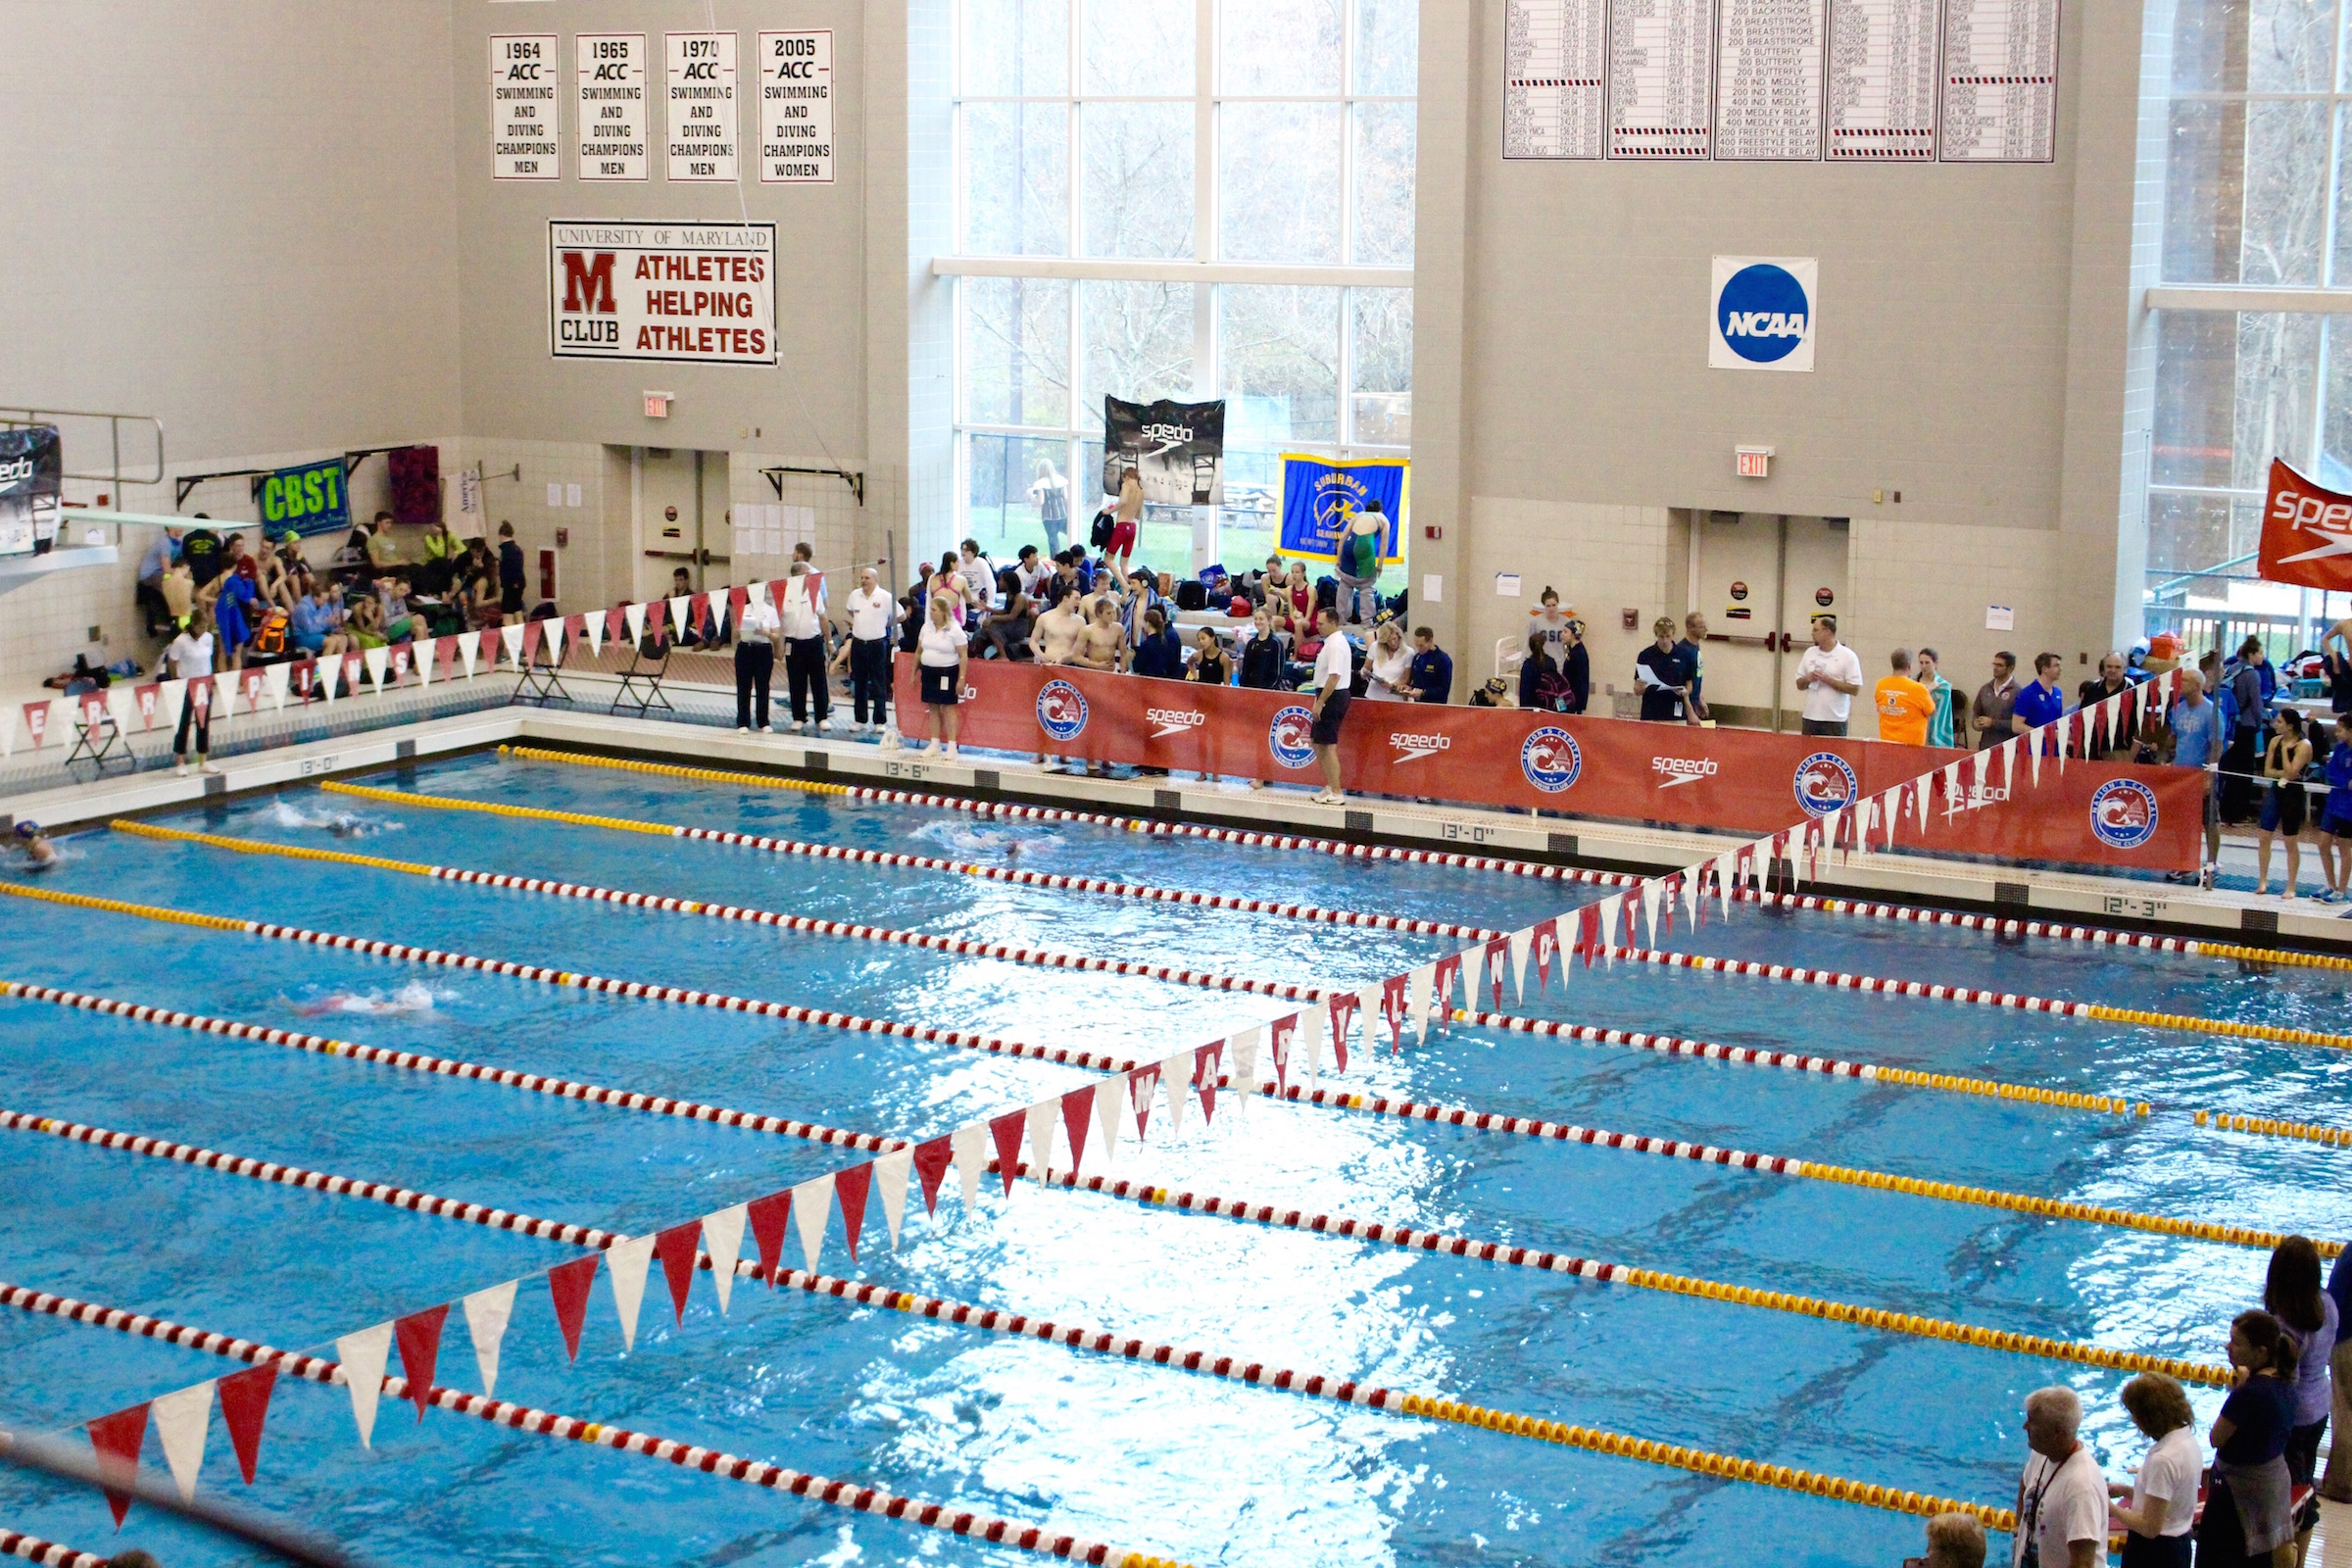 Sunday Race Videos Now Available On Demand For 2015 Ncap Invite